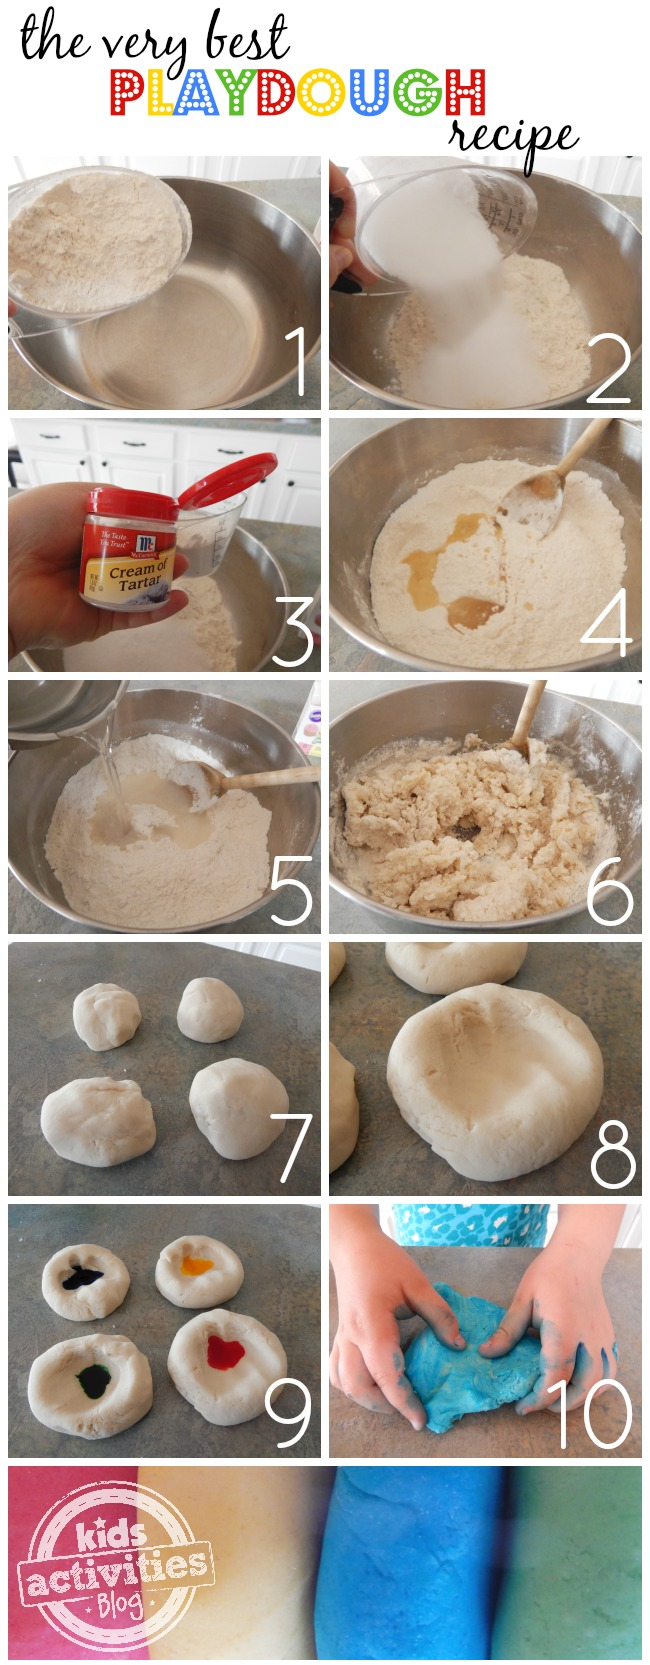 the very best playdough recipe